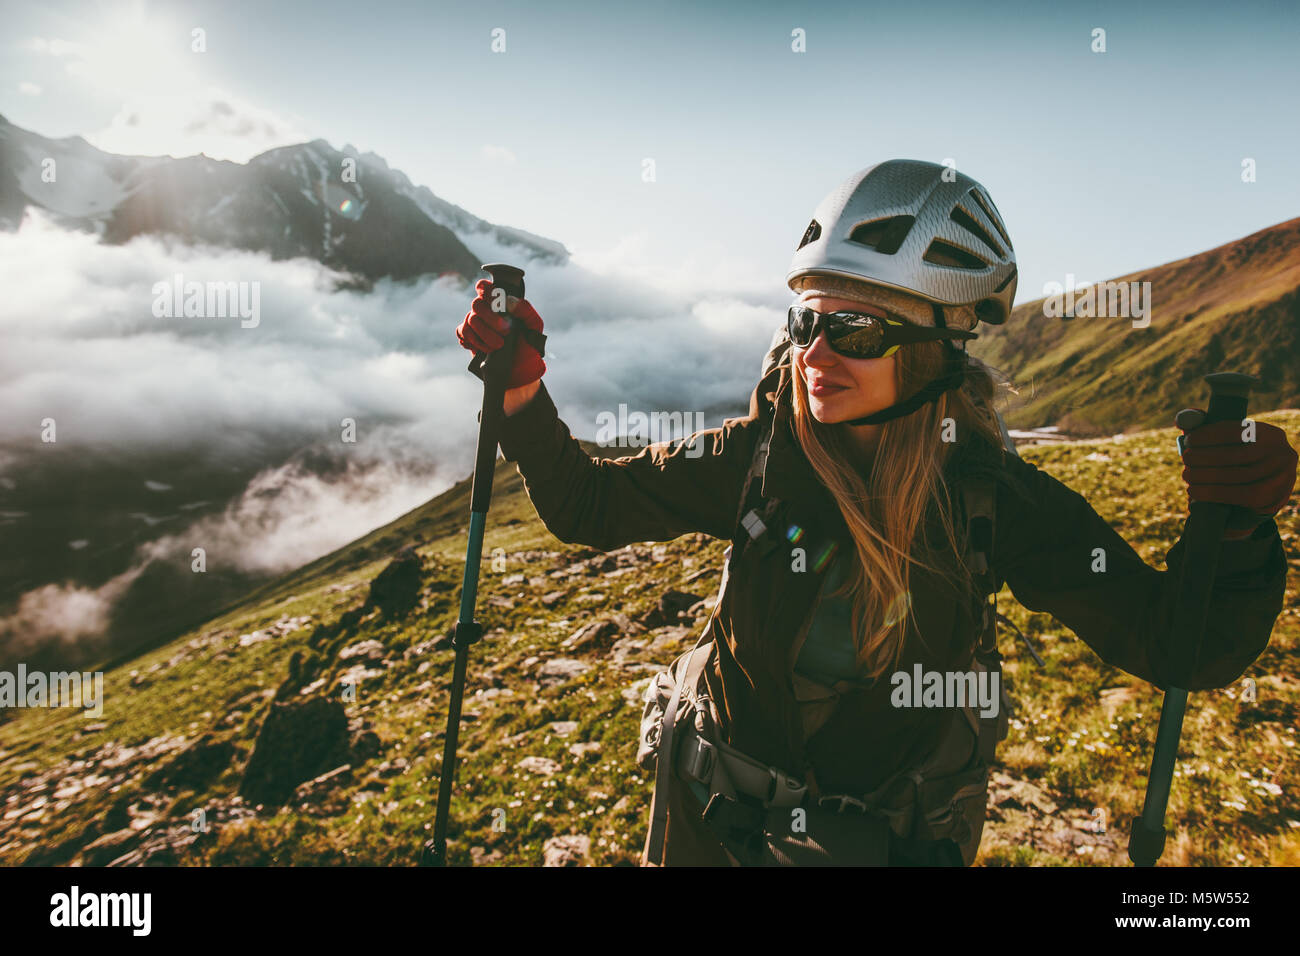 Happy woman enjoying sunset voyage paysage montagnes aventure de vie sain concept active vacances d'été Photo Stock